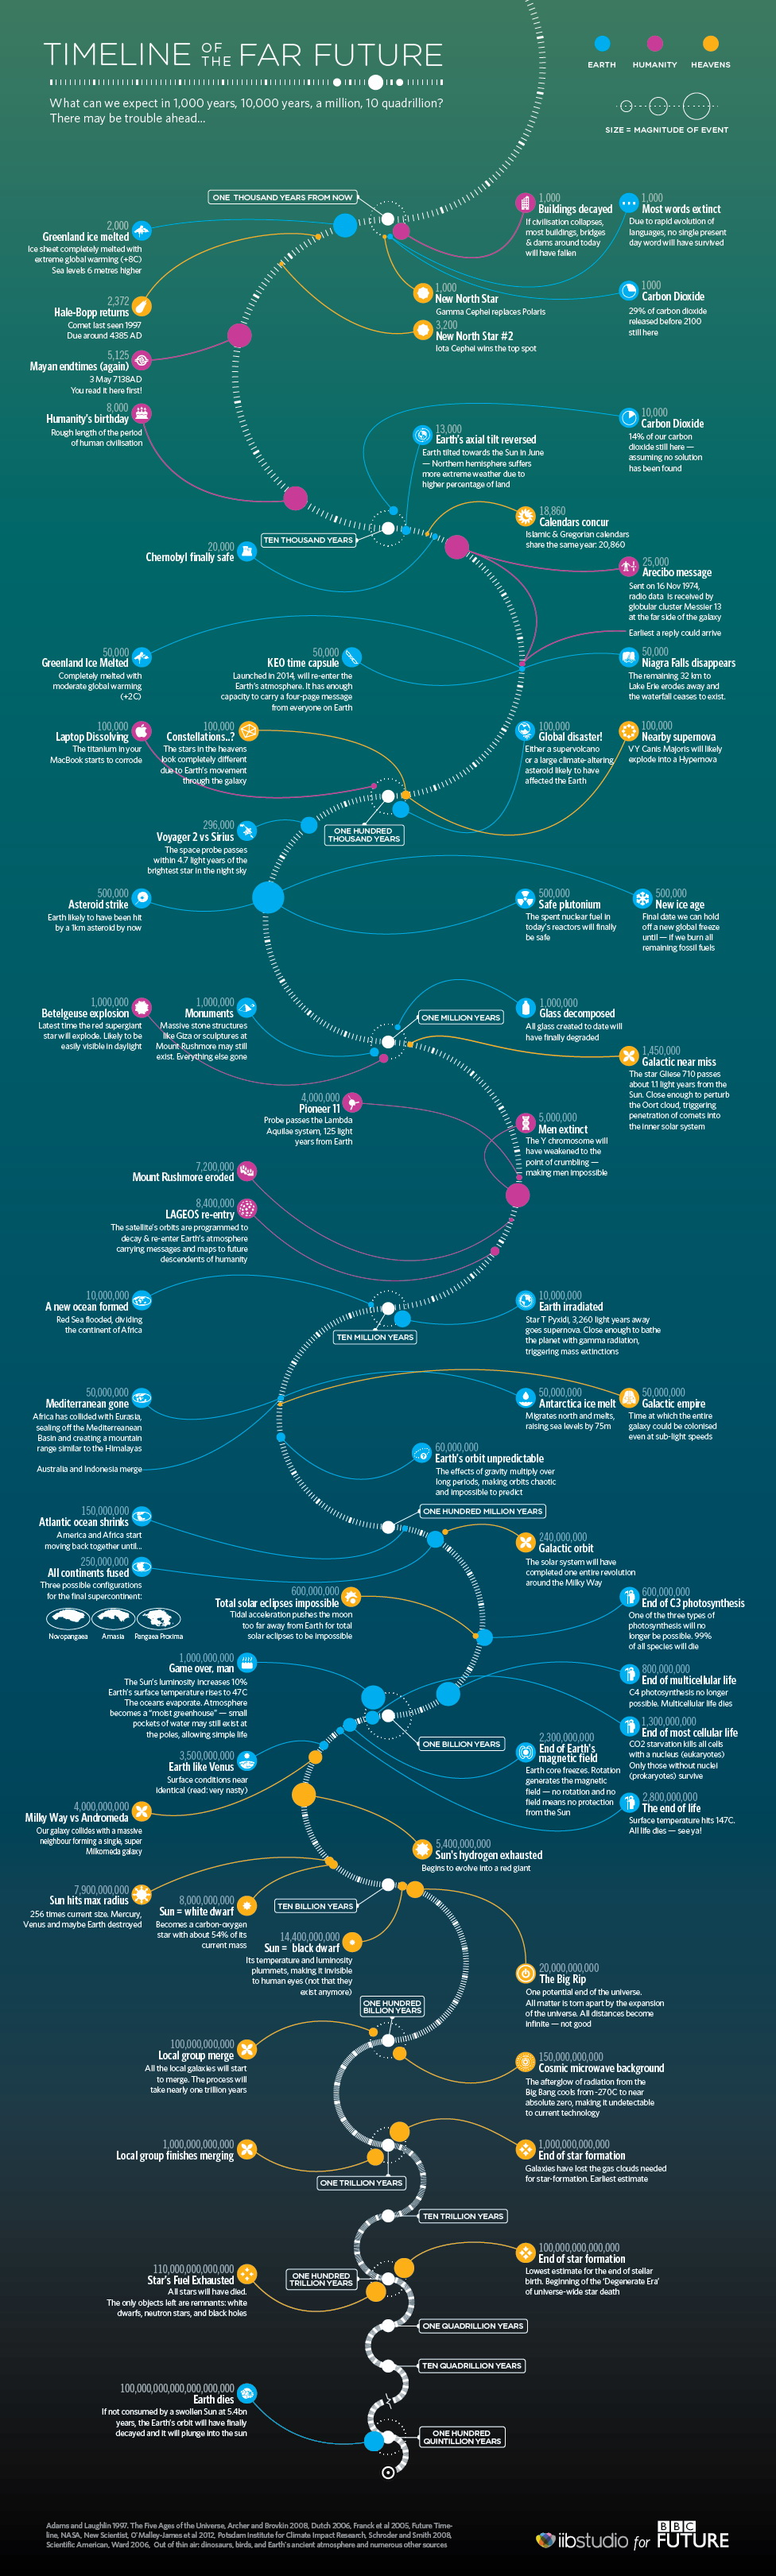 Science Saturday - A Timeline Of The Far Future